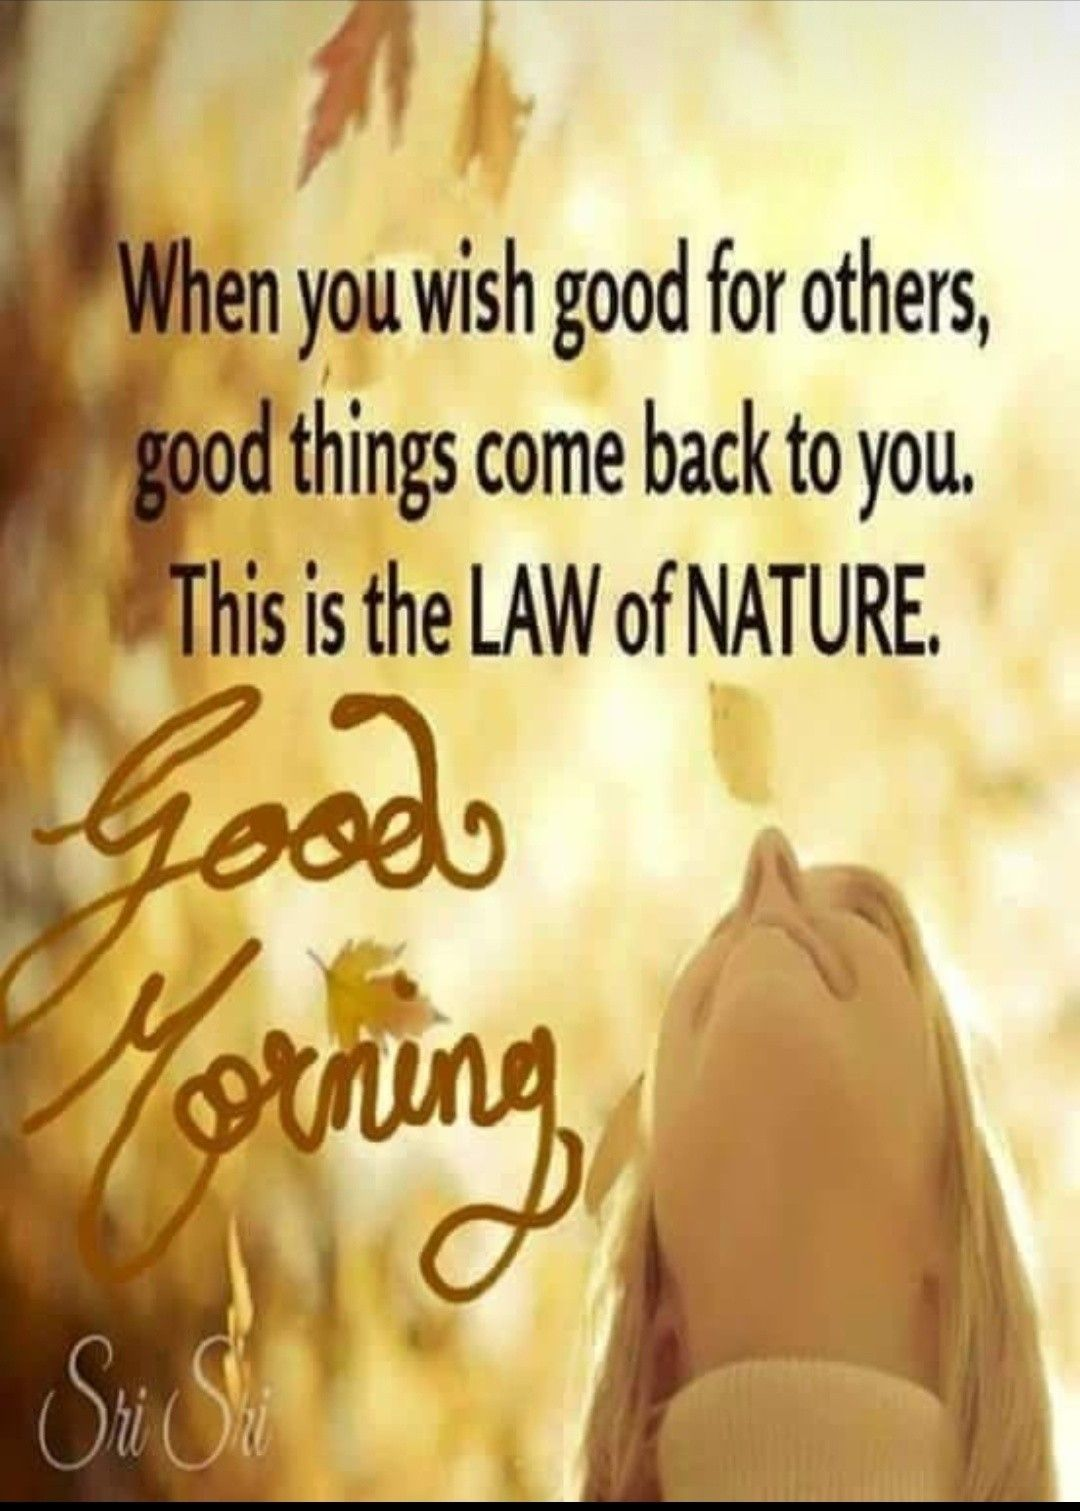 Positive Morning Quotes Gorgeous Pinprasuna Kamle On Good Mrng  Pinterest  Spiritual Messages